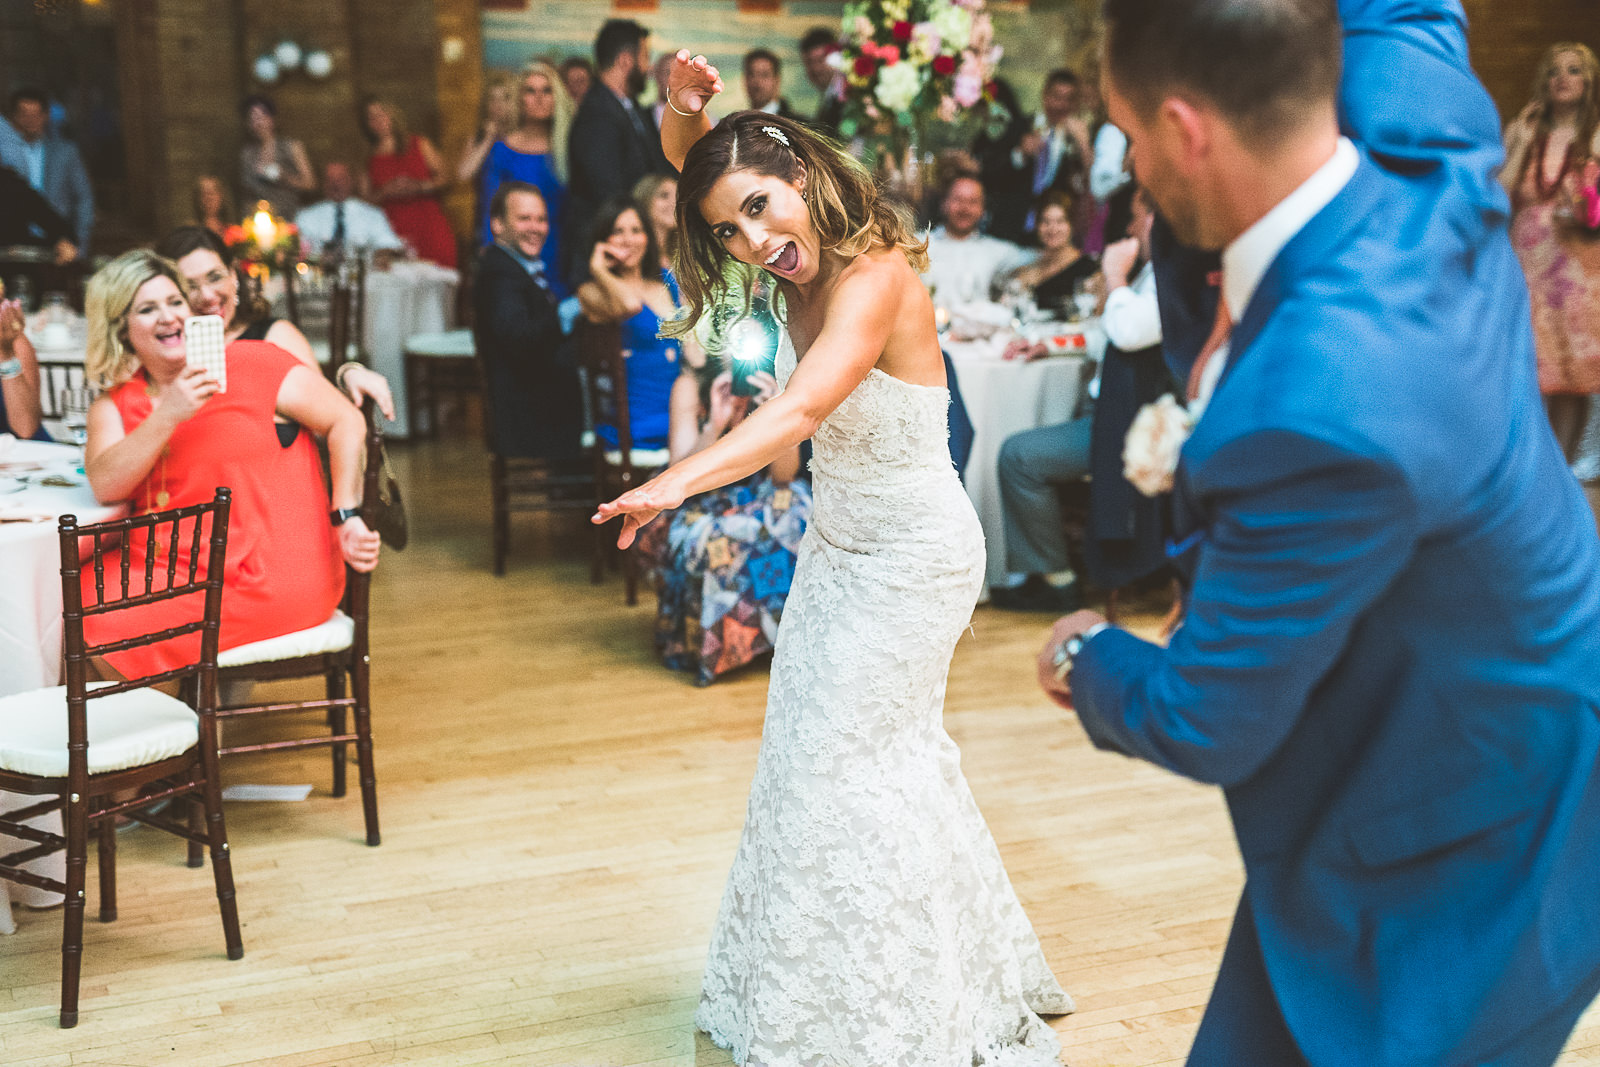 64 first dance - Natalie + Alan // Chicago Wedding Photographer at Cafe Brauer